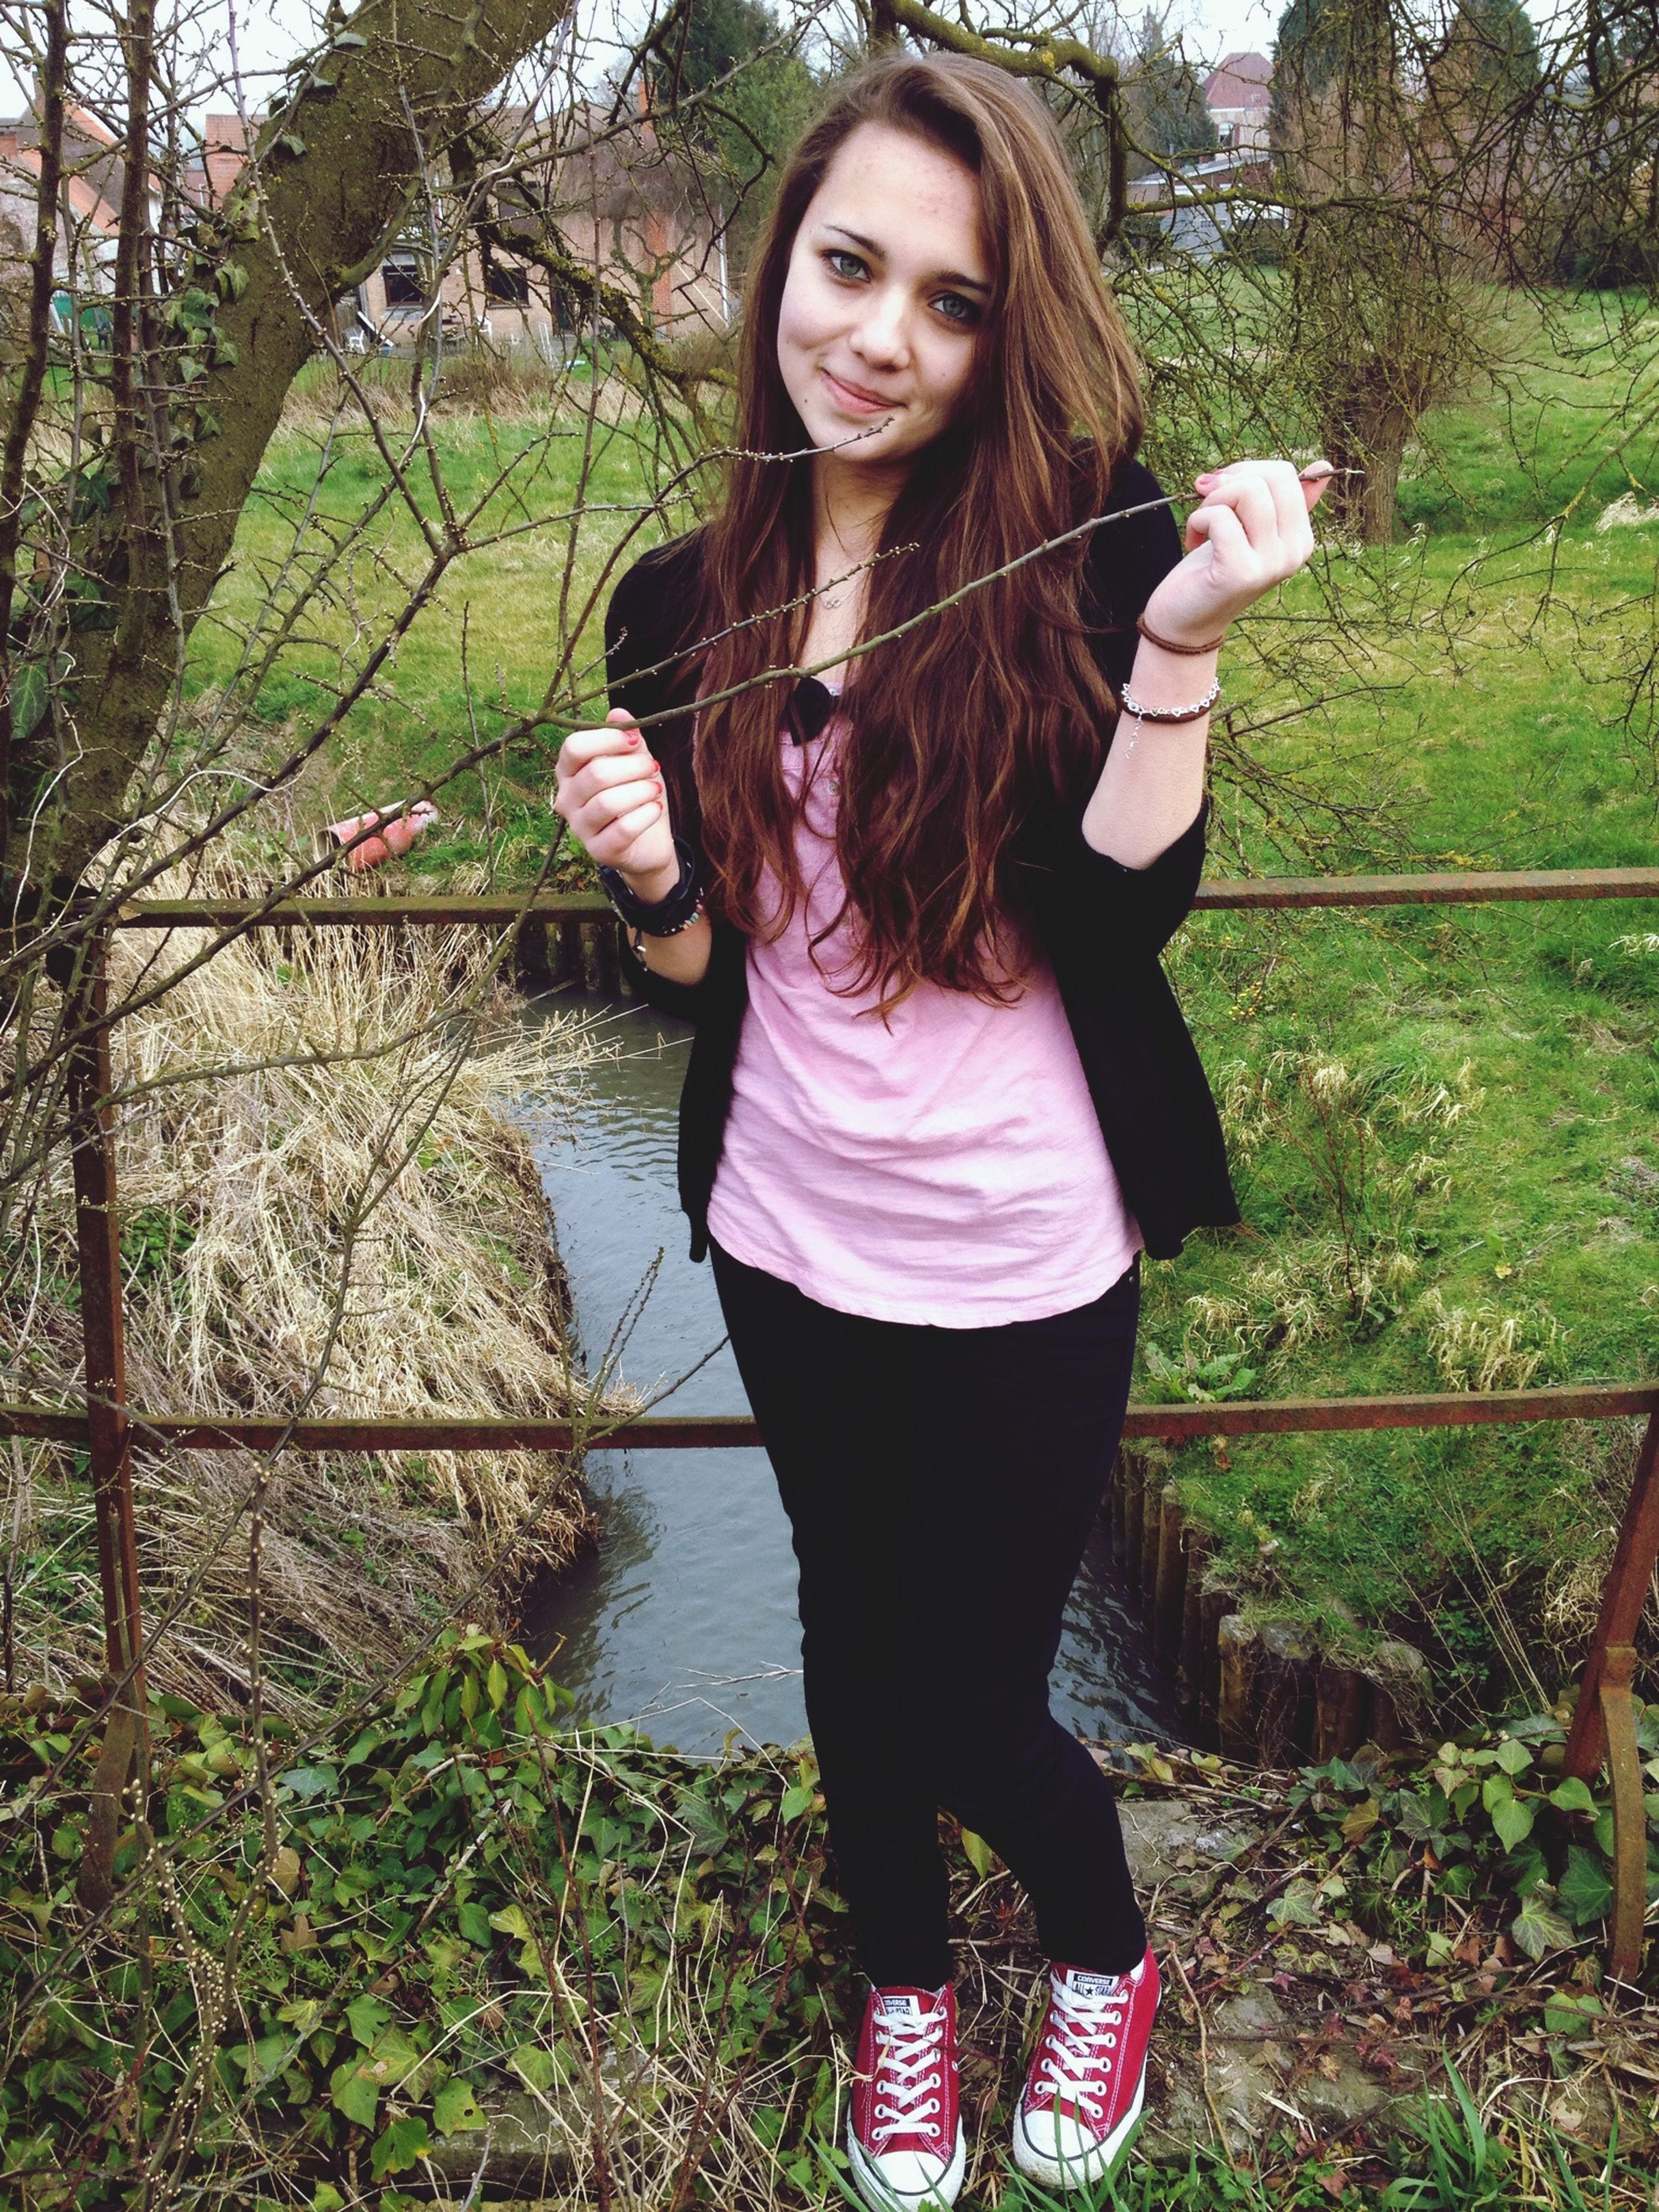 young adult, lifestyles, casual clothing, young women, standing, person, leisure activity, long hair, looking at camera, front view, portrait, full length, three quarter length, tree, smiling, outdoors, day